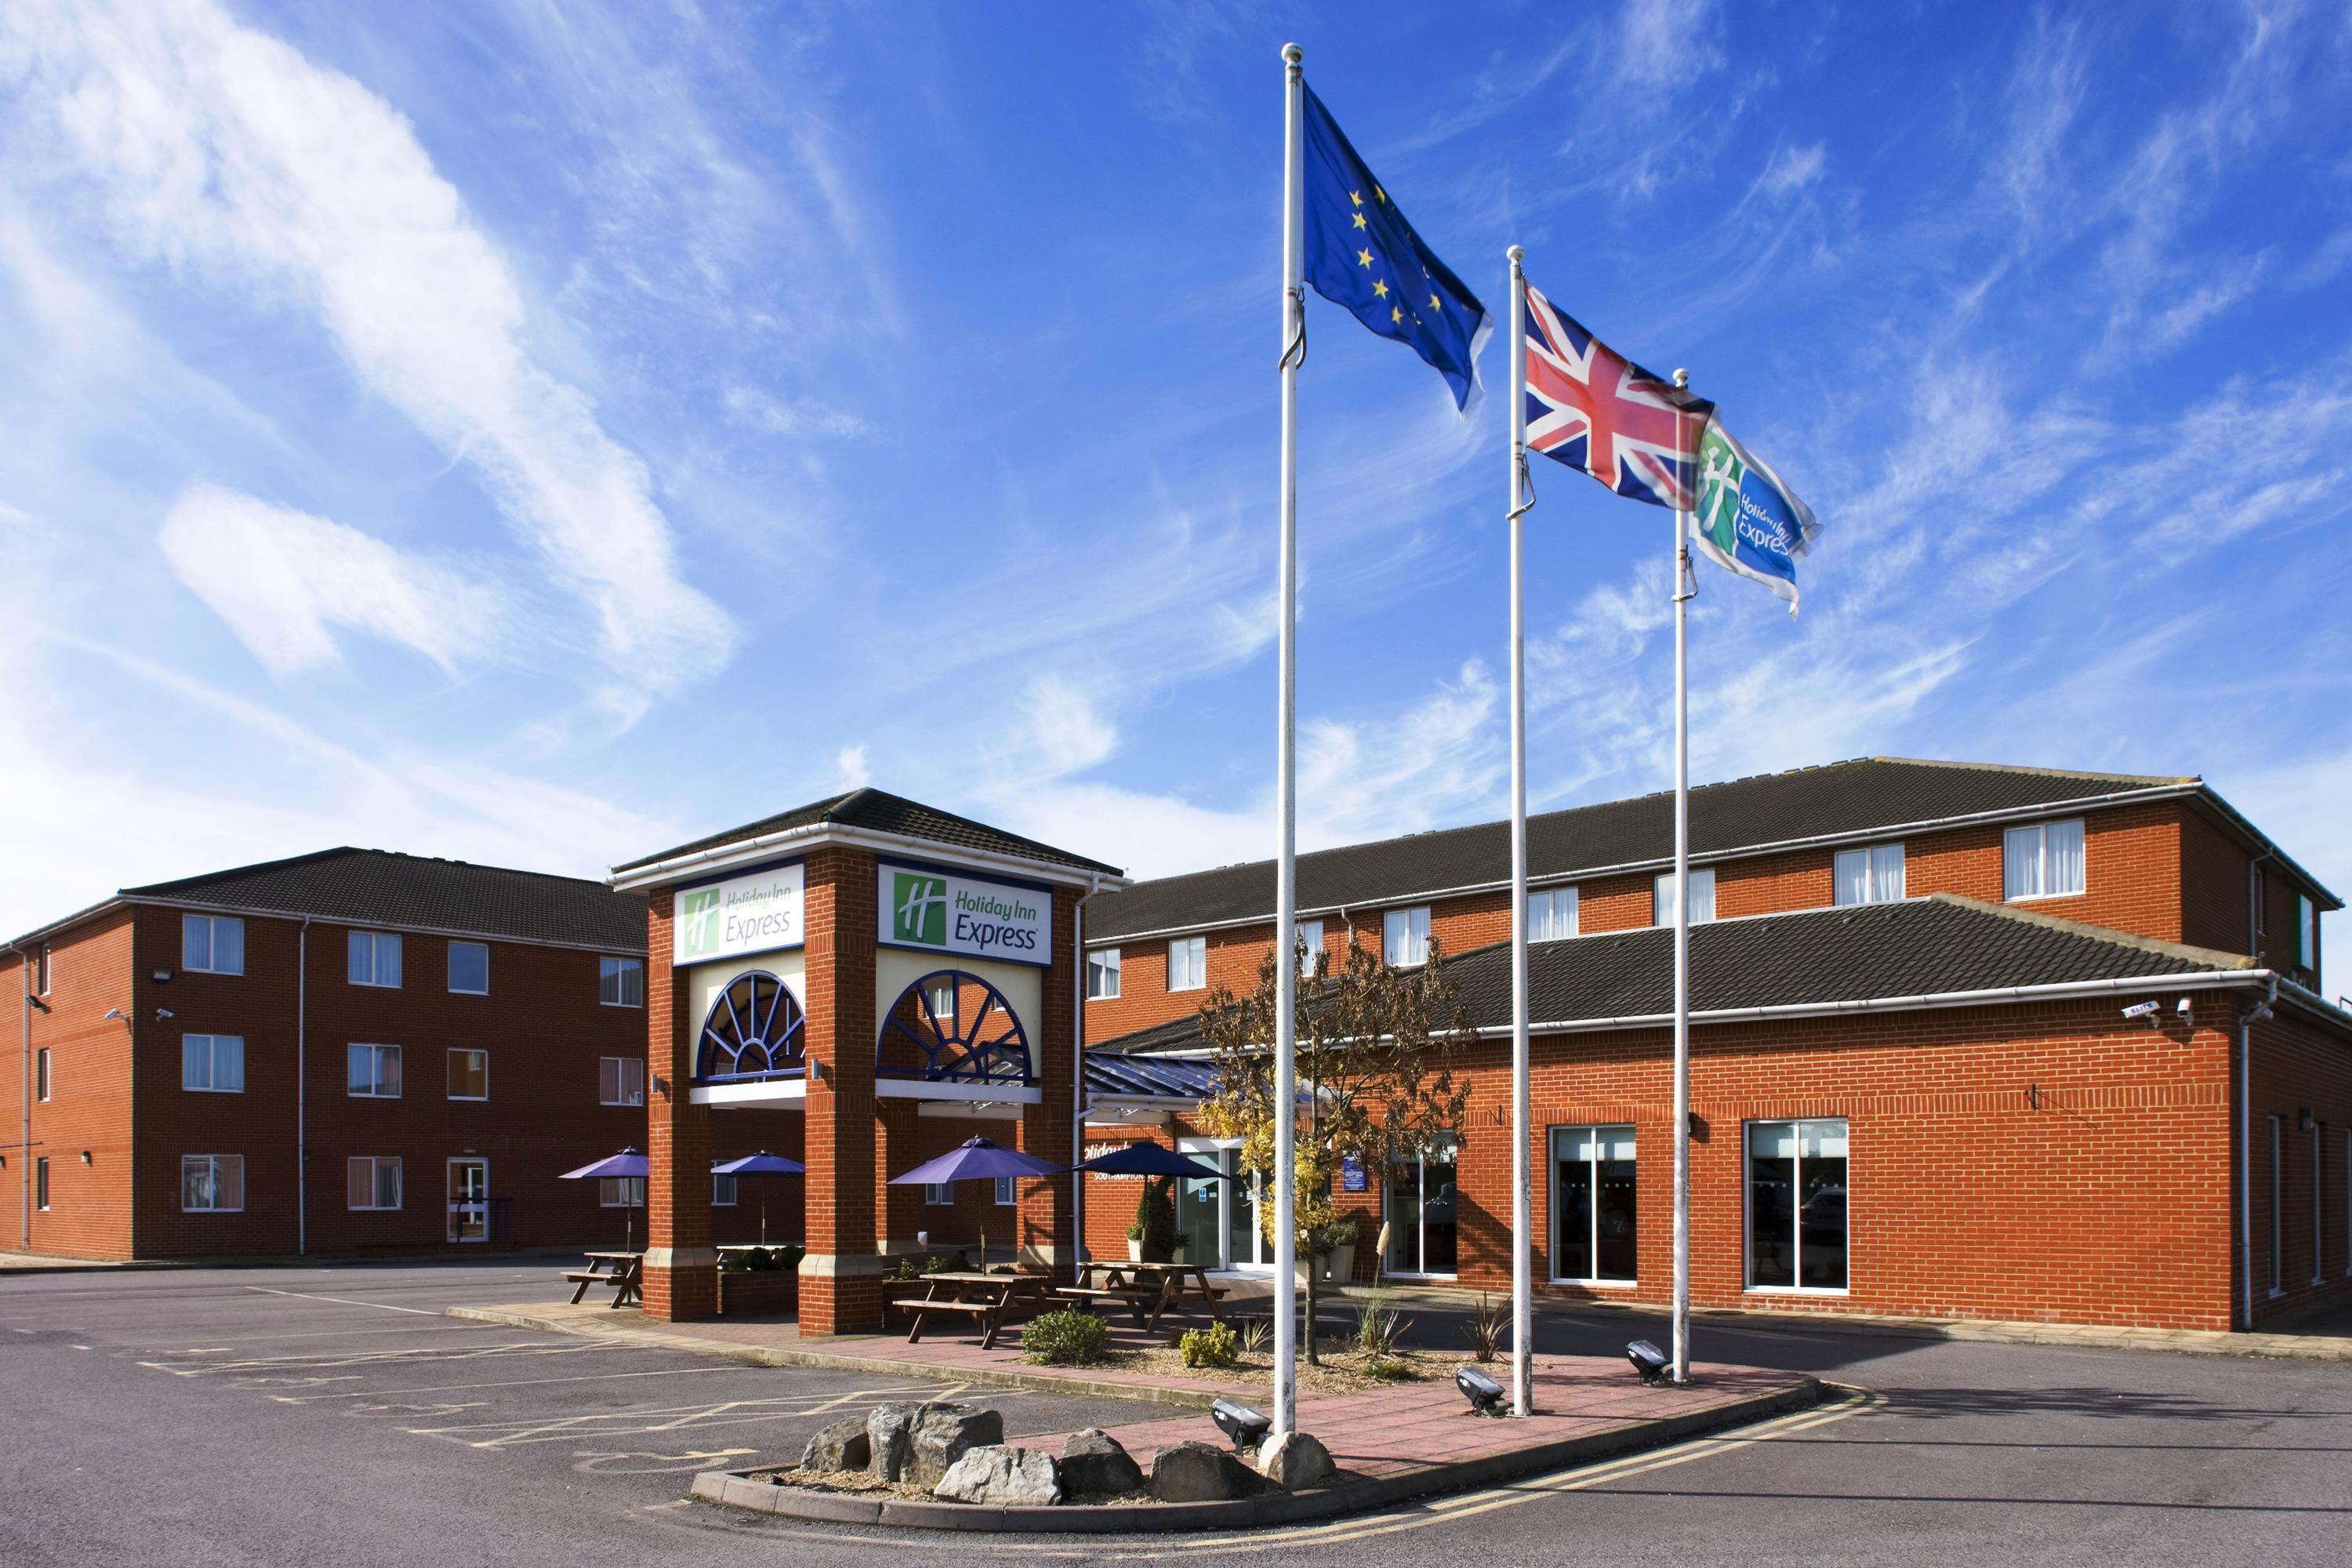 Holiday Inn Express Southampton - West